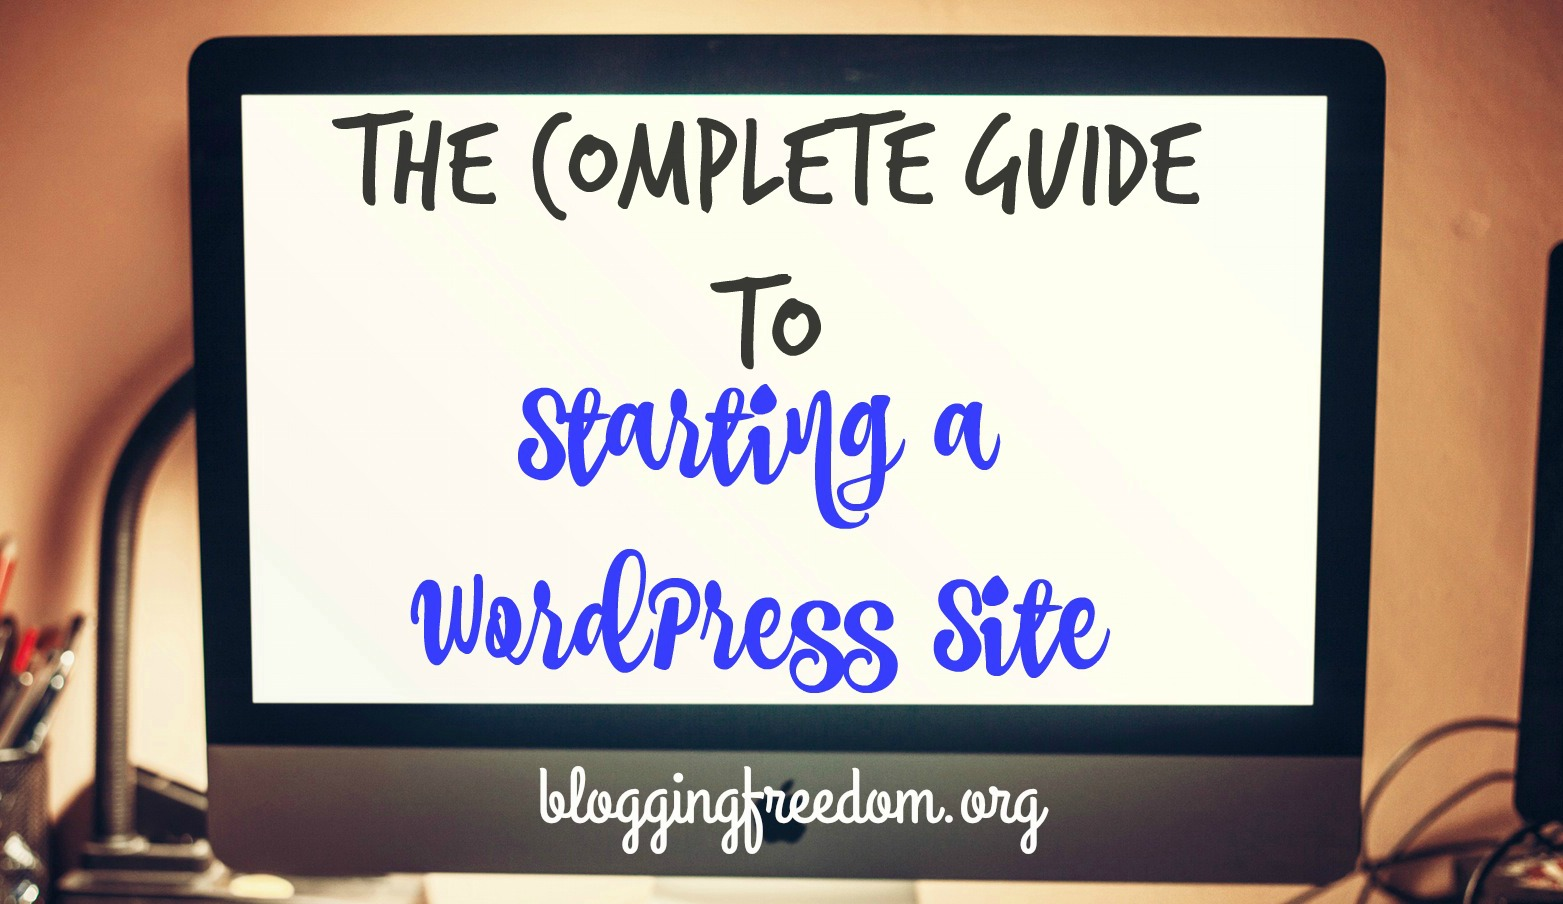 The Complete Guide To Starting A WordPress Site